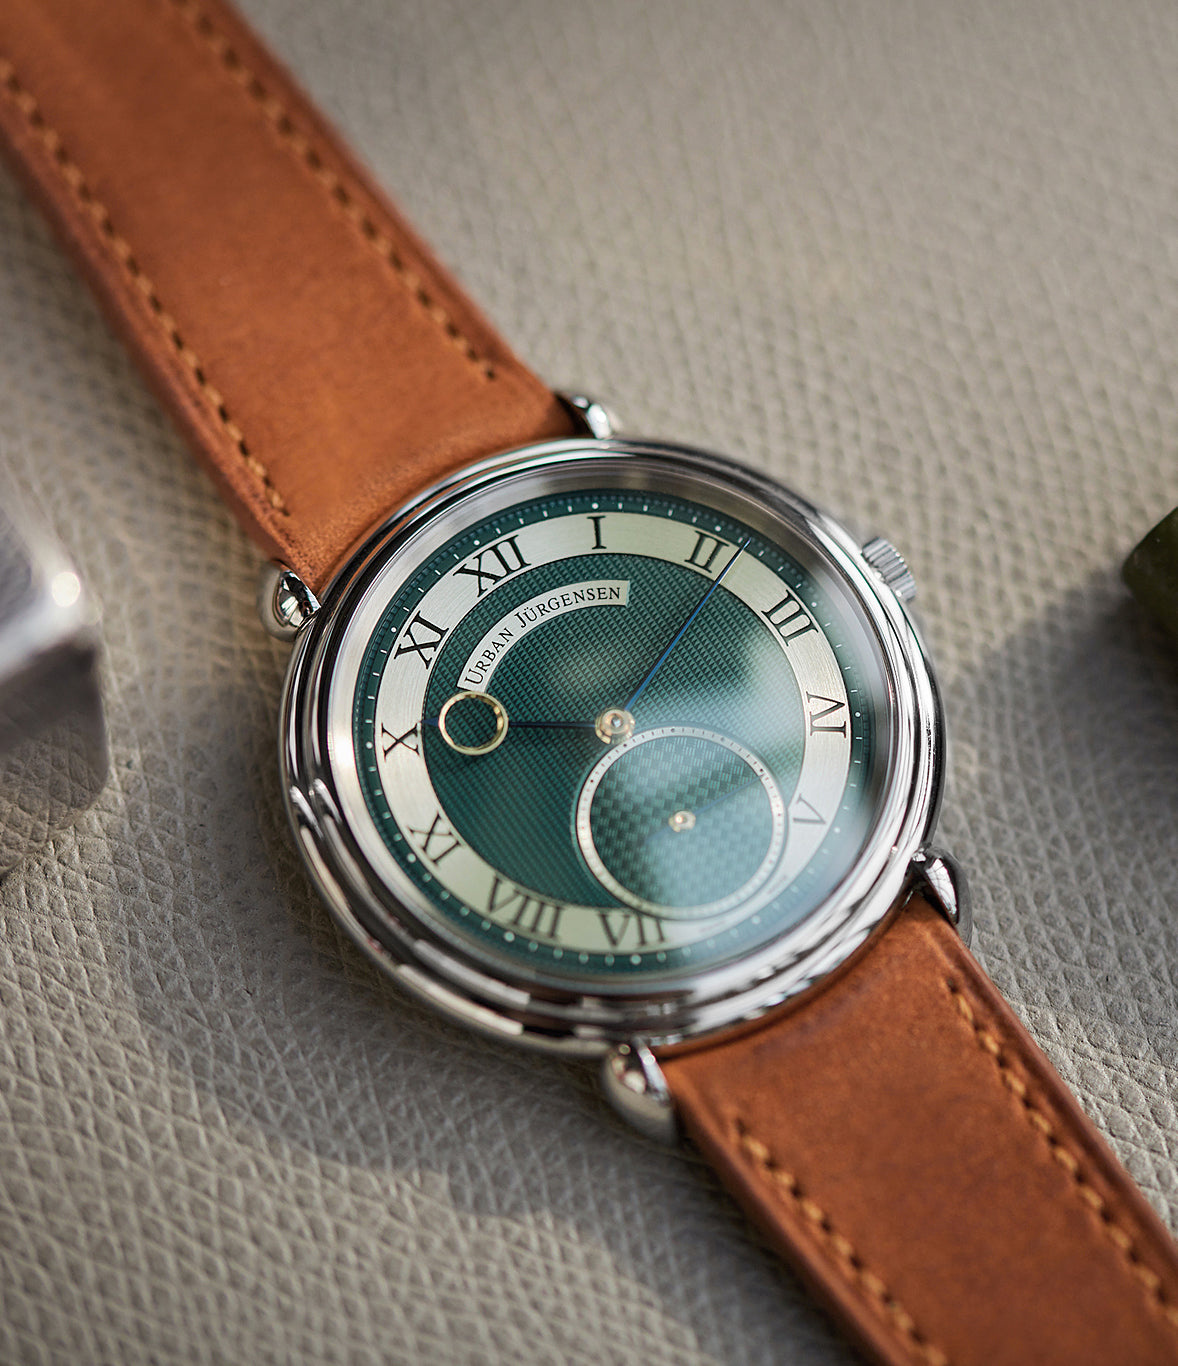 rare Urban Jürgensen Big 8 Limited Edition British racing green dial steel time-only dress watch for sale exclusively at A Collected Man London